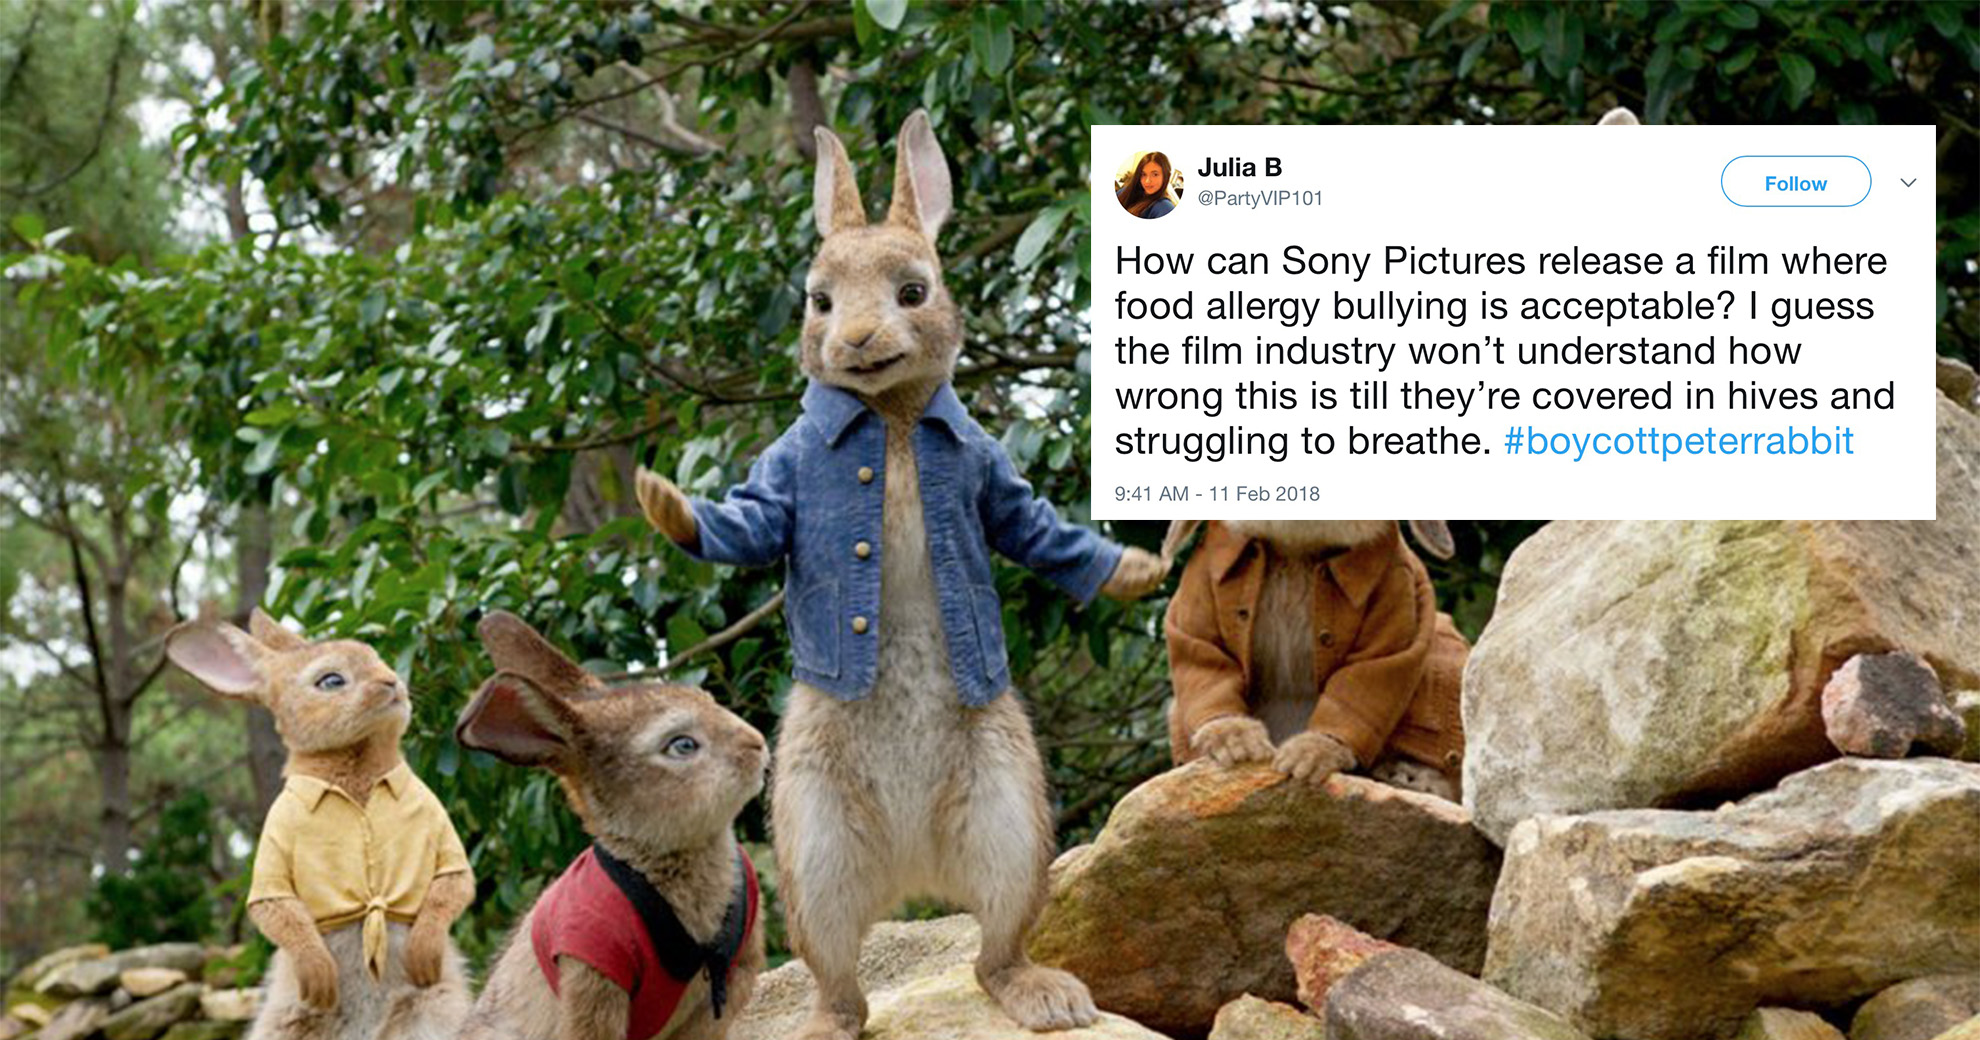 New 'Peter Rabbit' Film Sparks Backlash Over 'Food Allergy Bullying' Scene